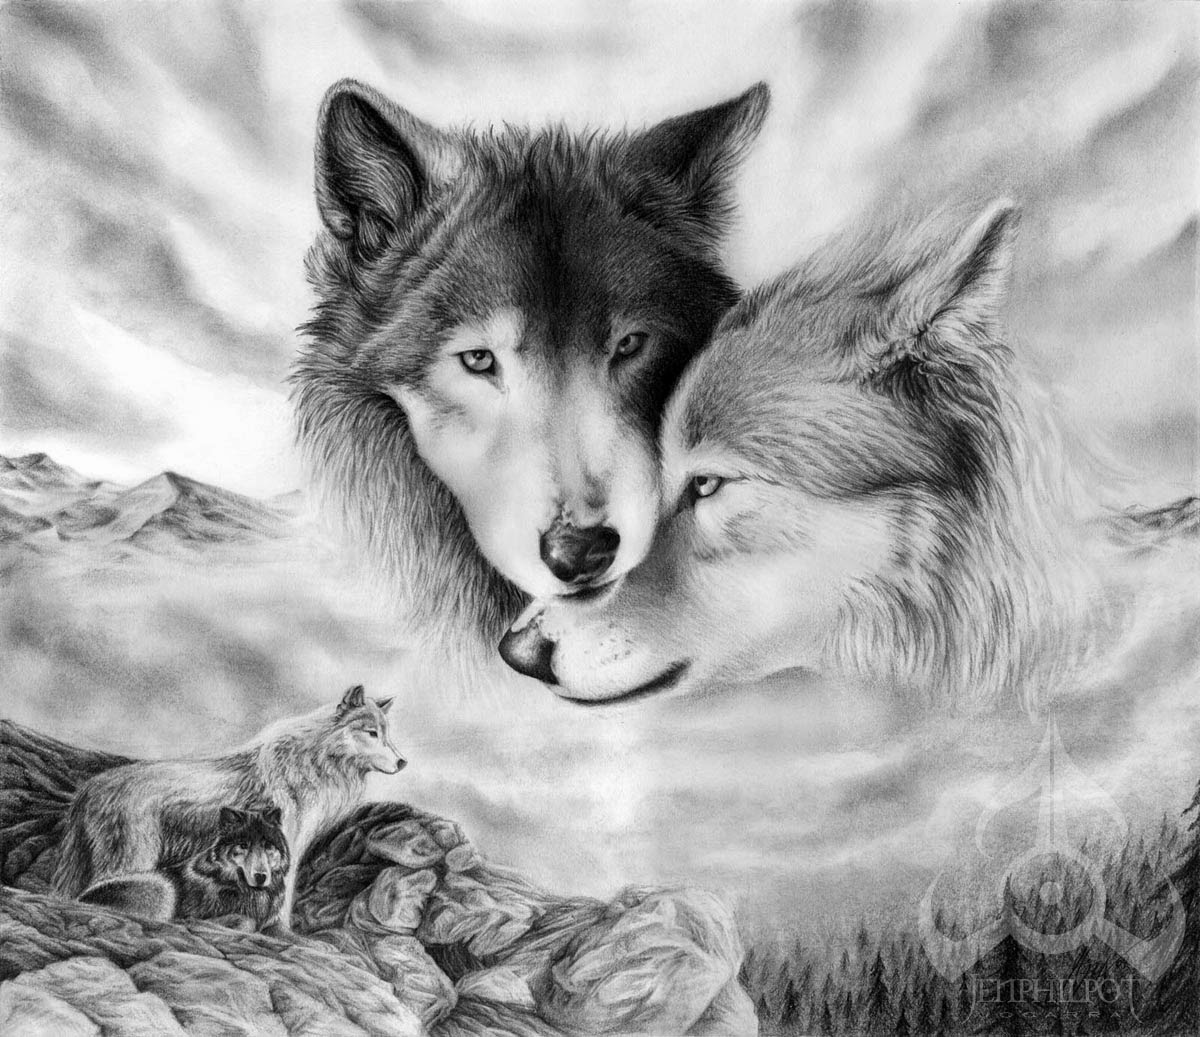 Loving you because it is today This is what really counts #ProtectWolves #Wolves  #YellowstoneWolves #StandForWolves  #Keepwolveslisted #ESA<br>http://pic.twitter.com/PcLOwXia6v